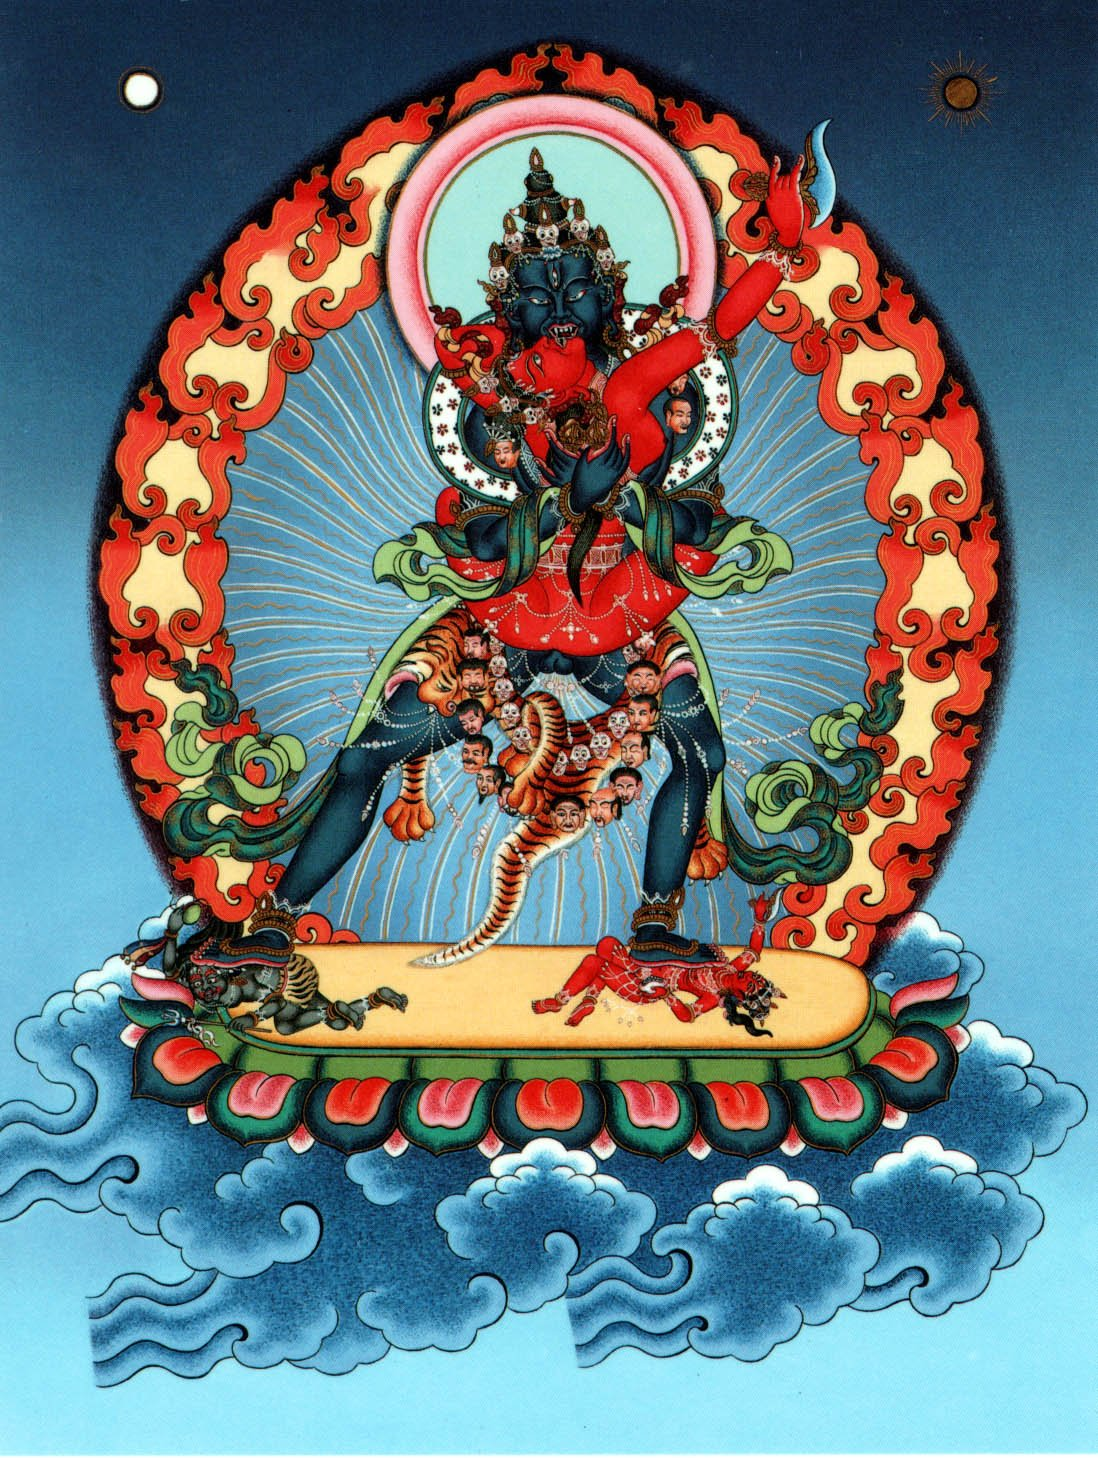 Stunning visualizations such as deities in yabyum—symbolic of the union of wisdom (female) and compassion (male) — were often misunderstood. The symbolism is profound and universal. Deity yoga visualization is growing in popularity in the West.